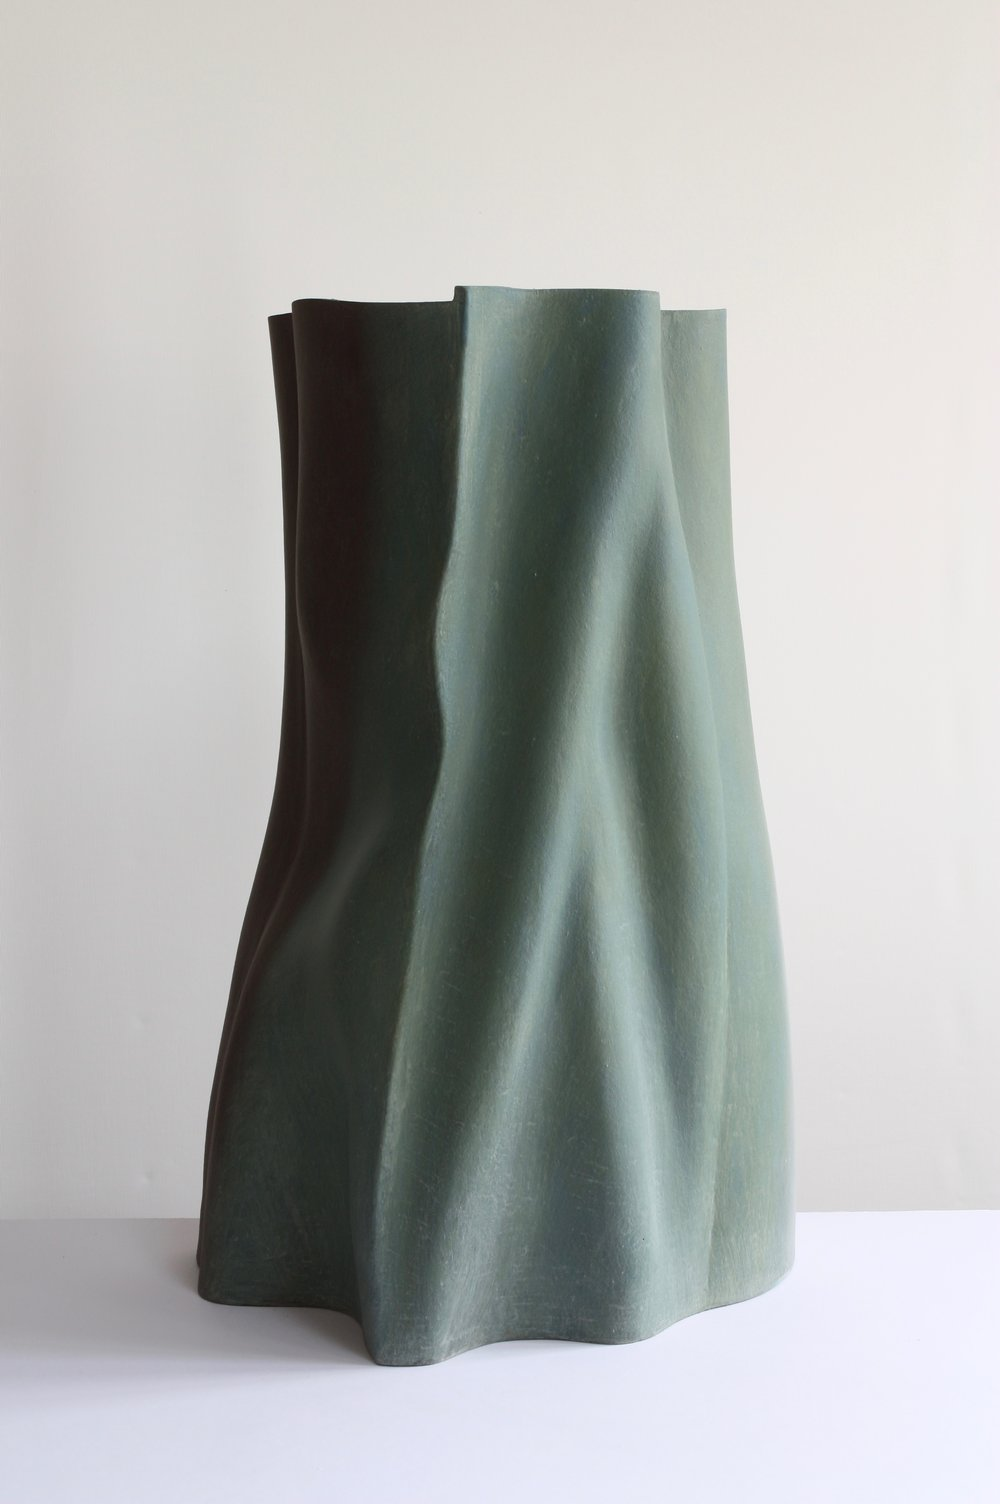 Plainsong, 2015, 55cm high